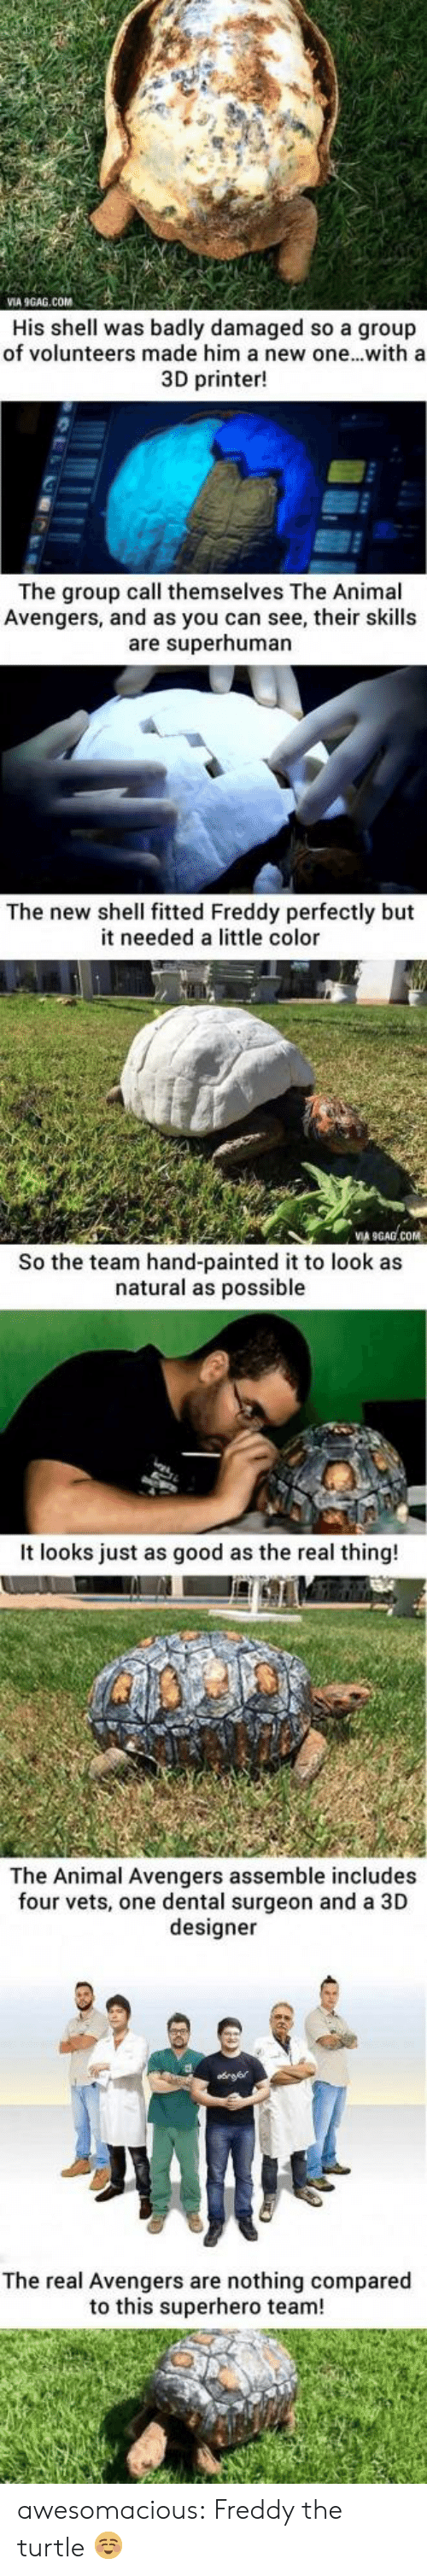 Fitted: VIA 9GAG.COM  His shell was badly damaged so a group  of volunteers made him a new one...witha  3D printer!  The group call themselves The Animal  Avengers, and as you can see, their skills  are superhuman  The new shell fitted Freddy perfectly but  it needed a little color  VIA  COM  So the team hand-painted it to look as  natural as possible  It looks just as good as the real thing!  The Animal Avengers assemble includes  four vets, one dental surgeon and a 3D  designer  The real Avengers are nothing compared  to this superhero team! awesomacious:  Freddy the turtle ☺️